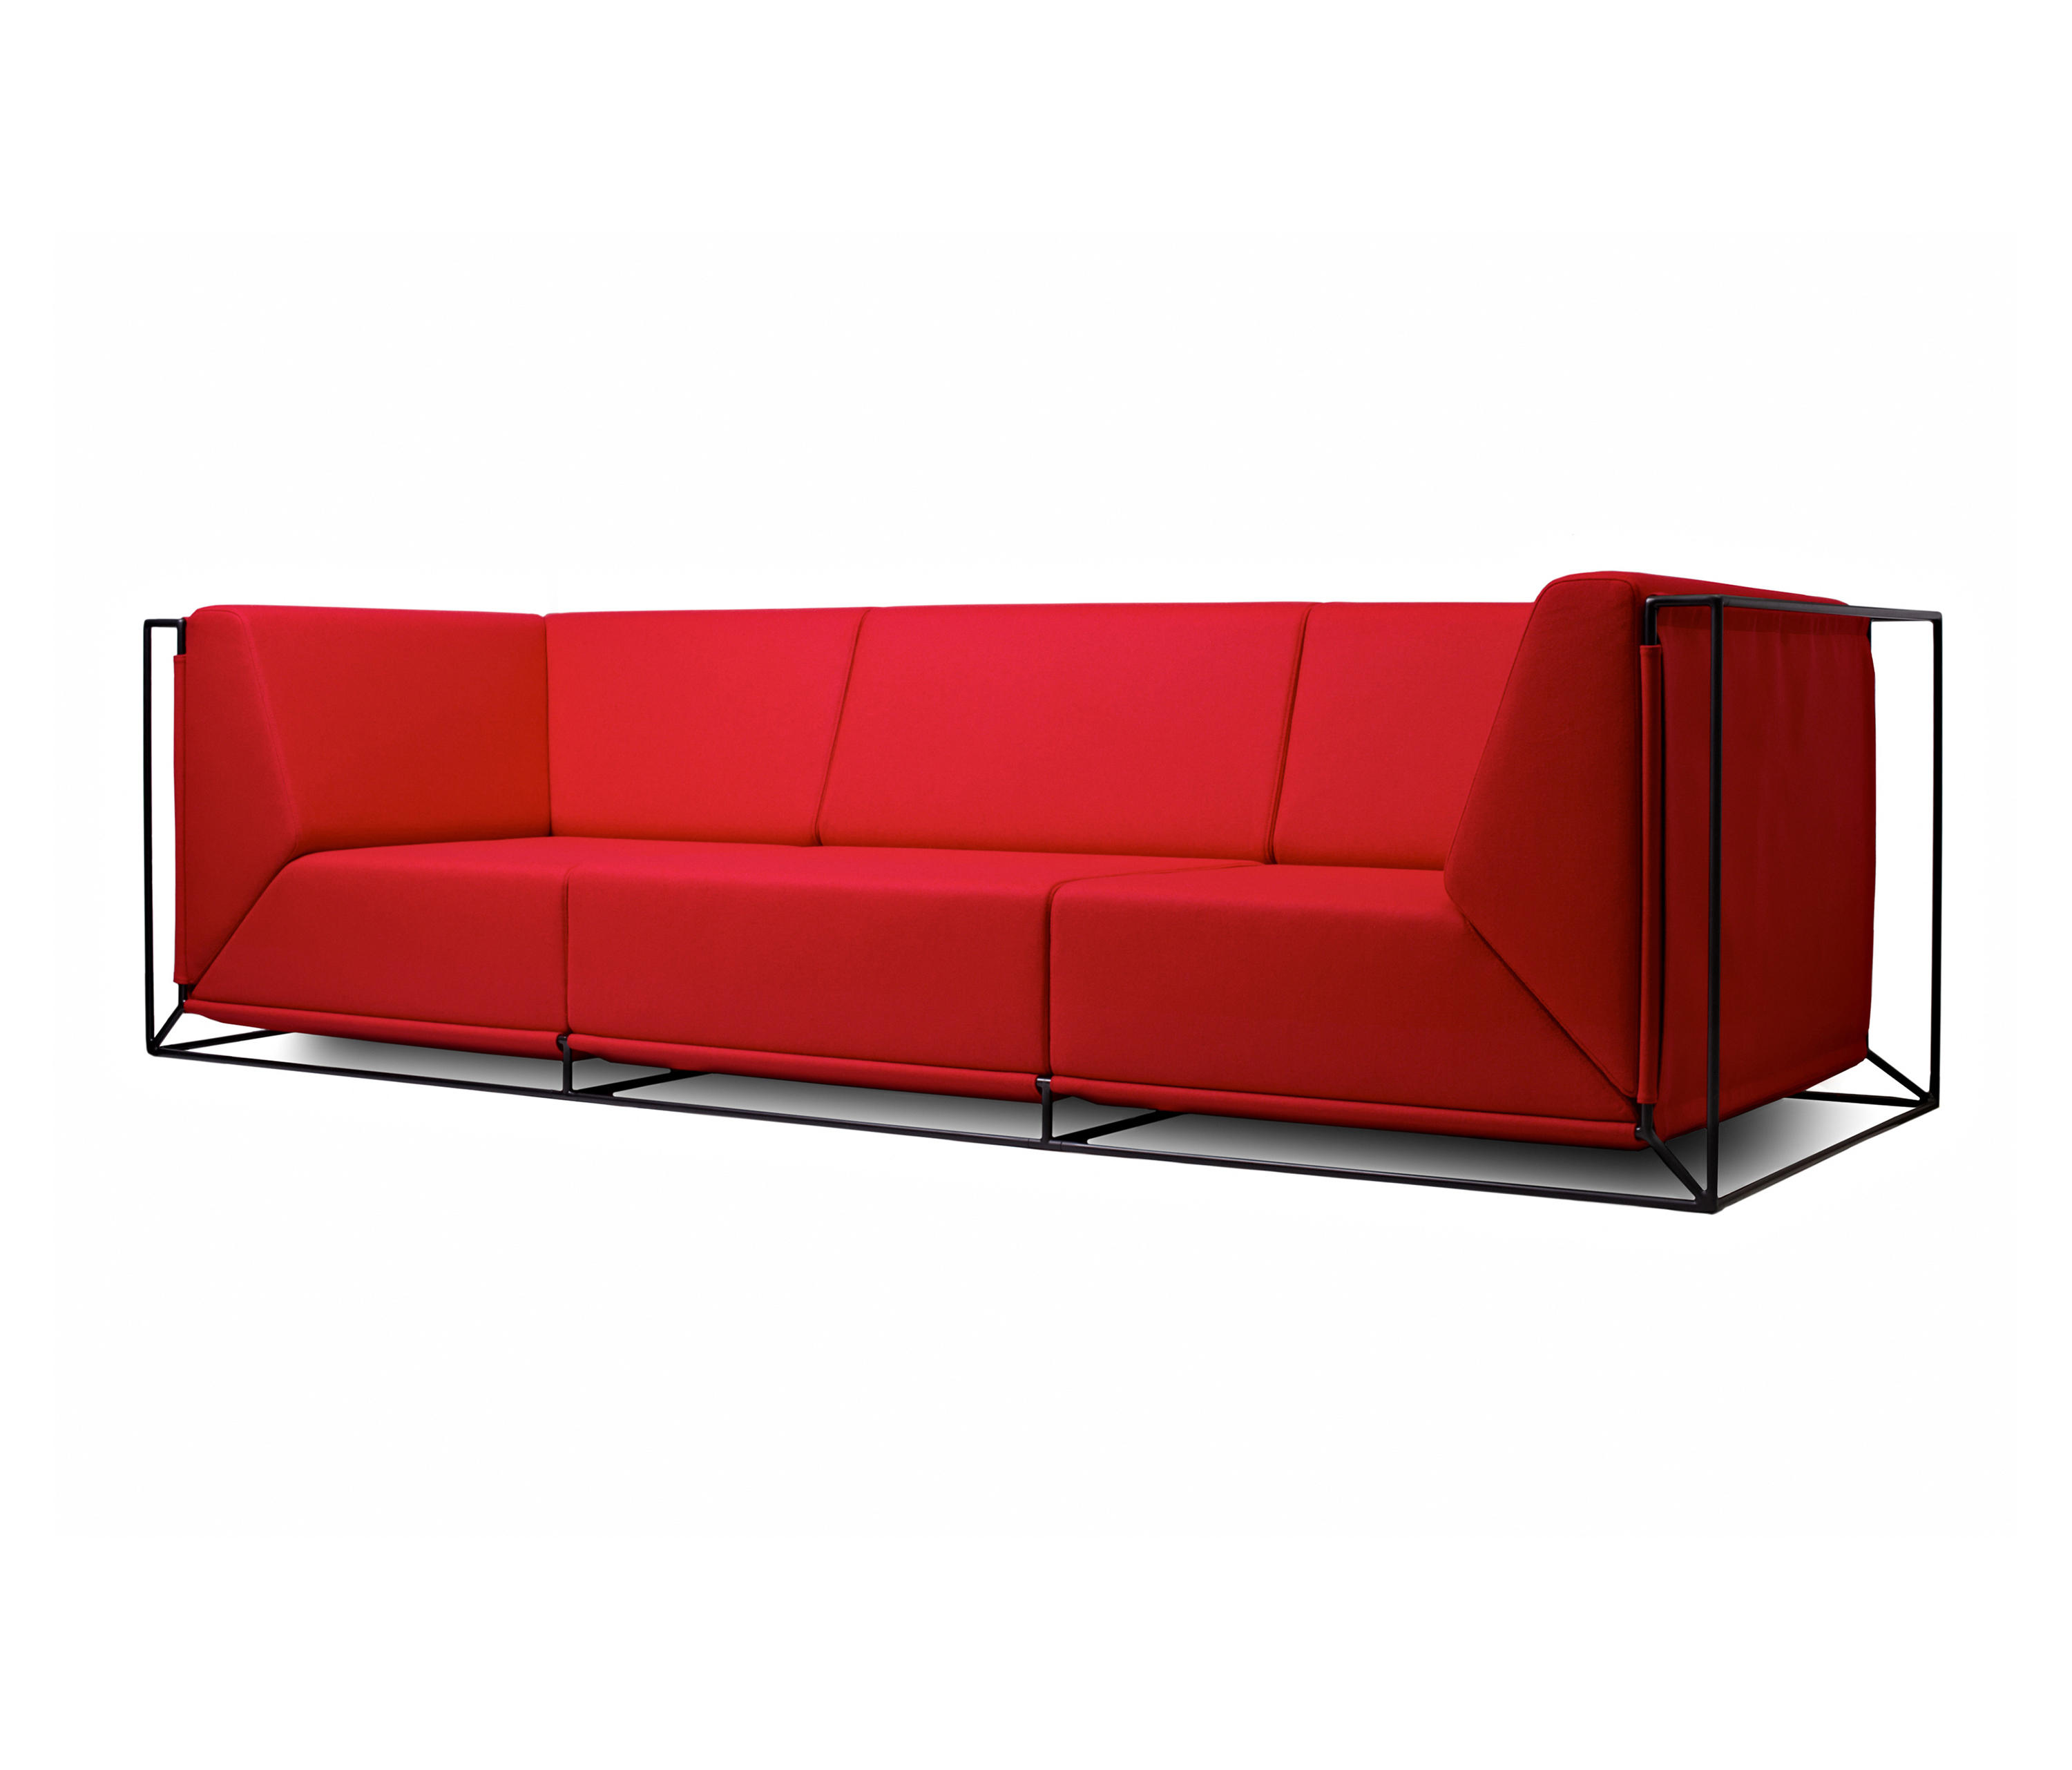 FLOATING SOFA - Sofas from Comforty | Architonic